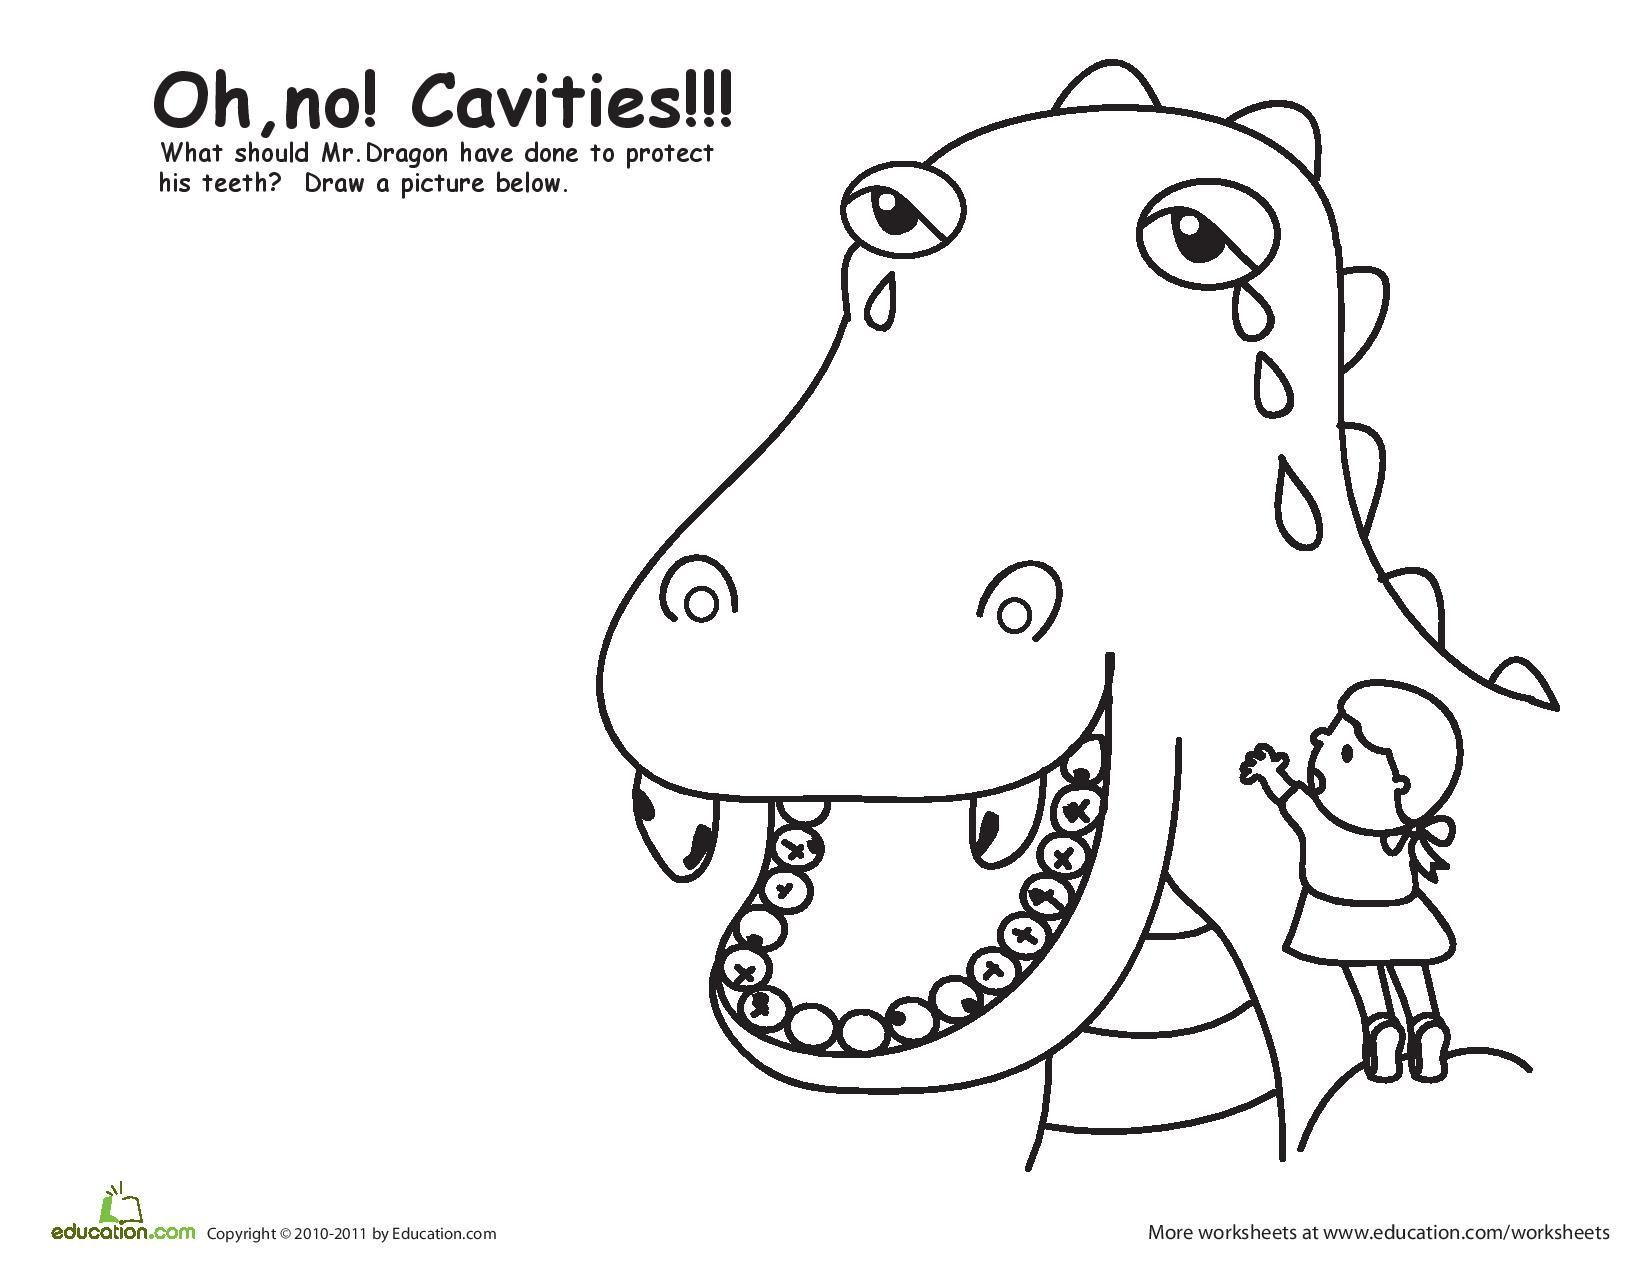 Color The Cavity Dragon Coloring Page What Should Mr Dragon Have Done To Protect His Teeth